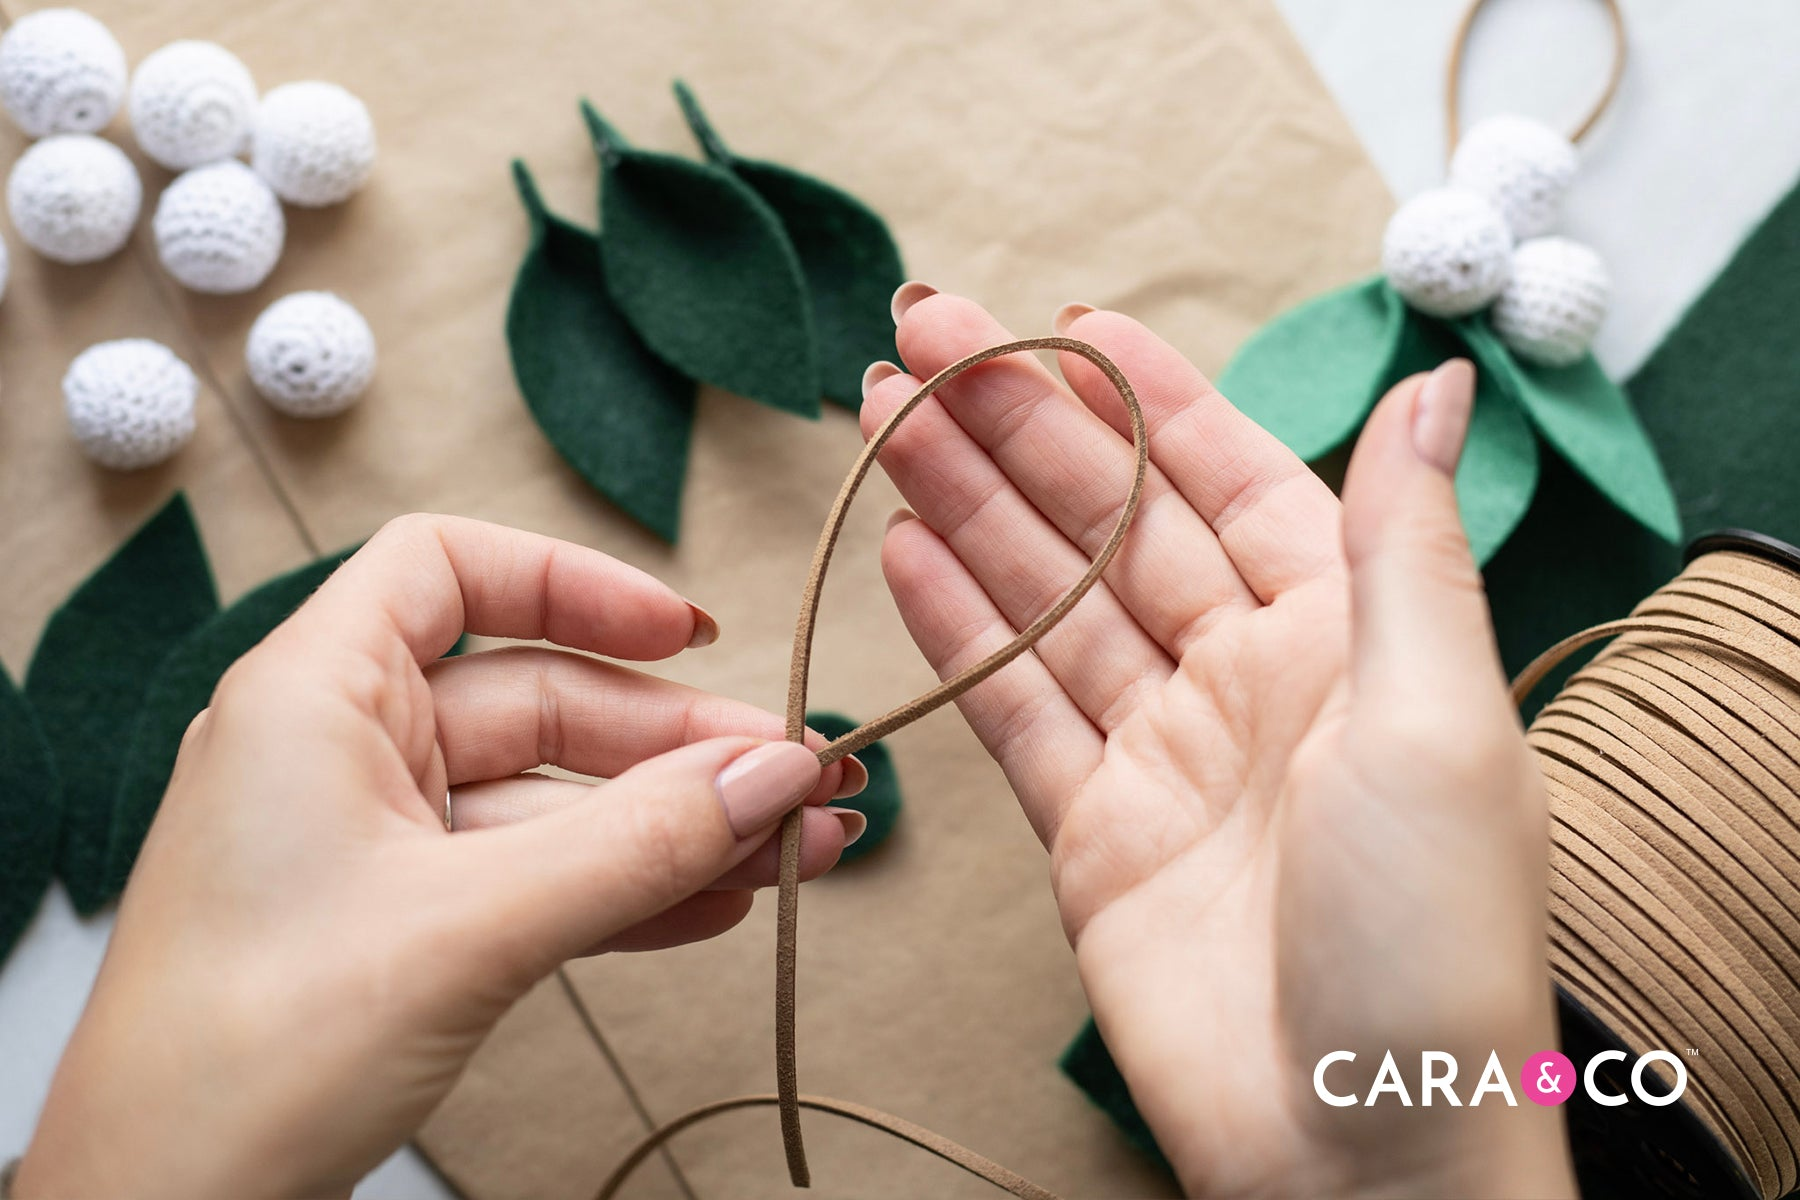 Minimalist DIY Christmas ornament - DIY felt ornament